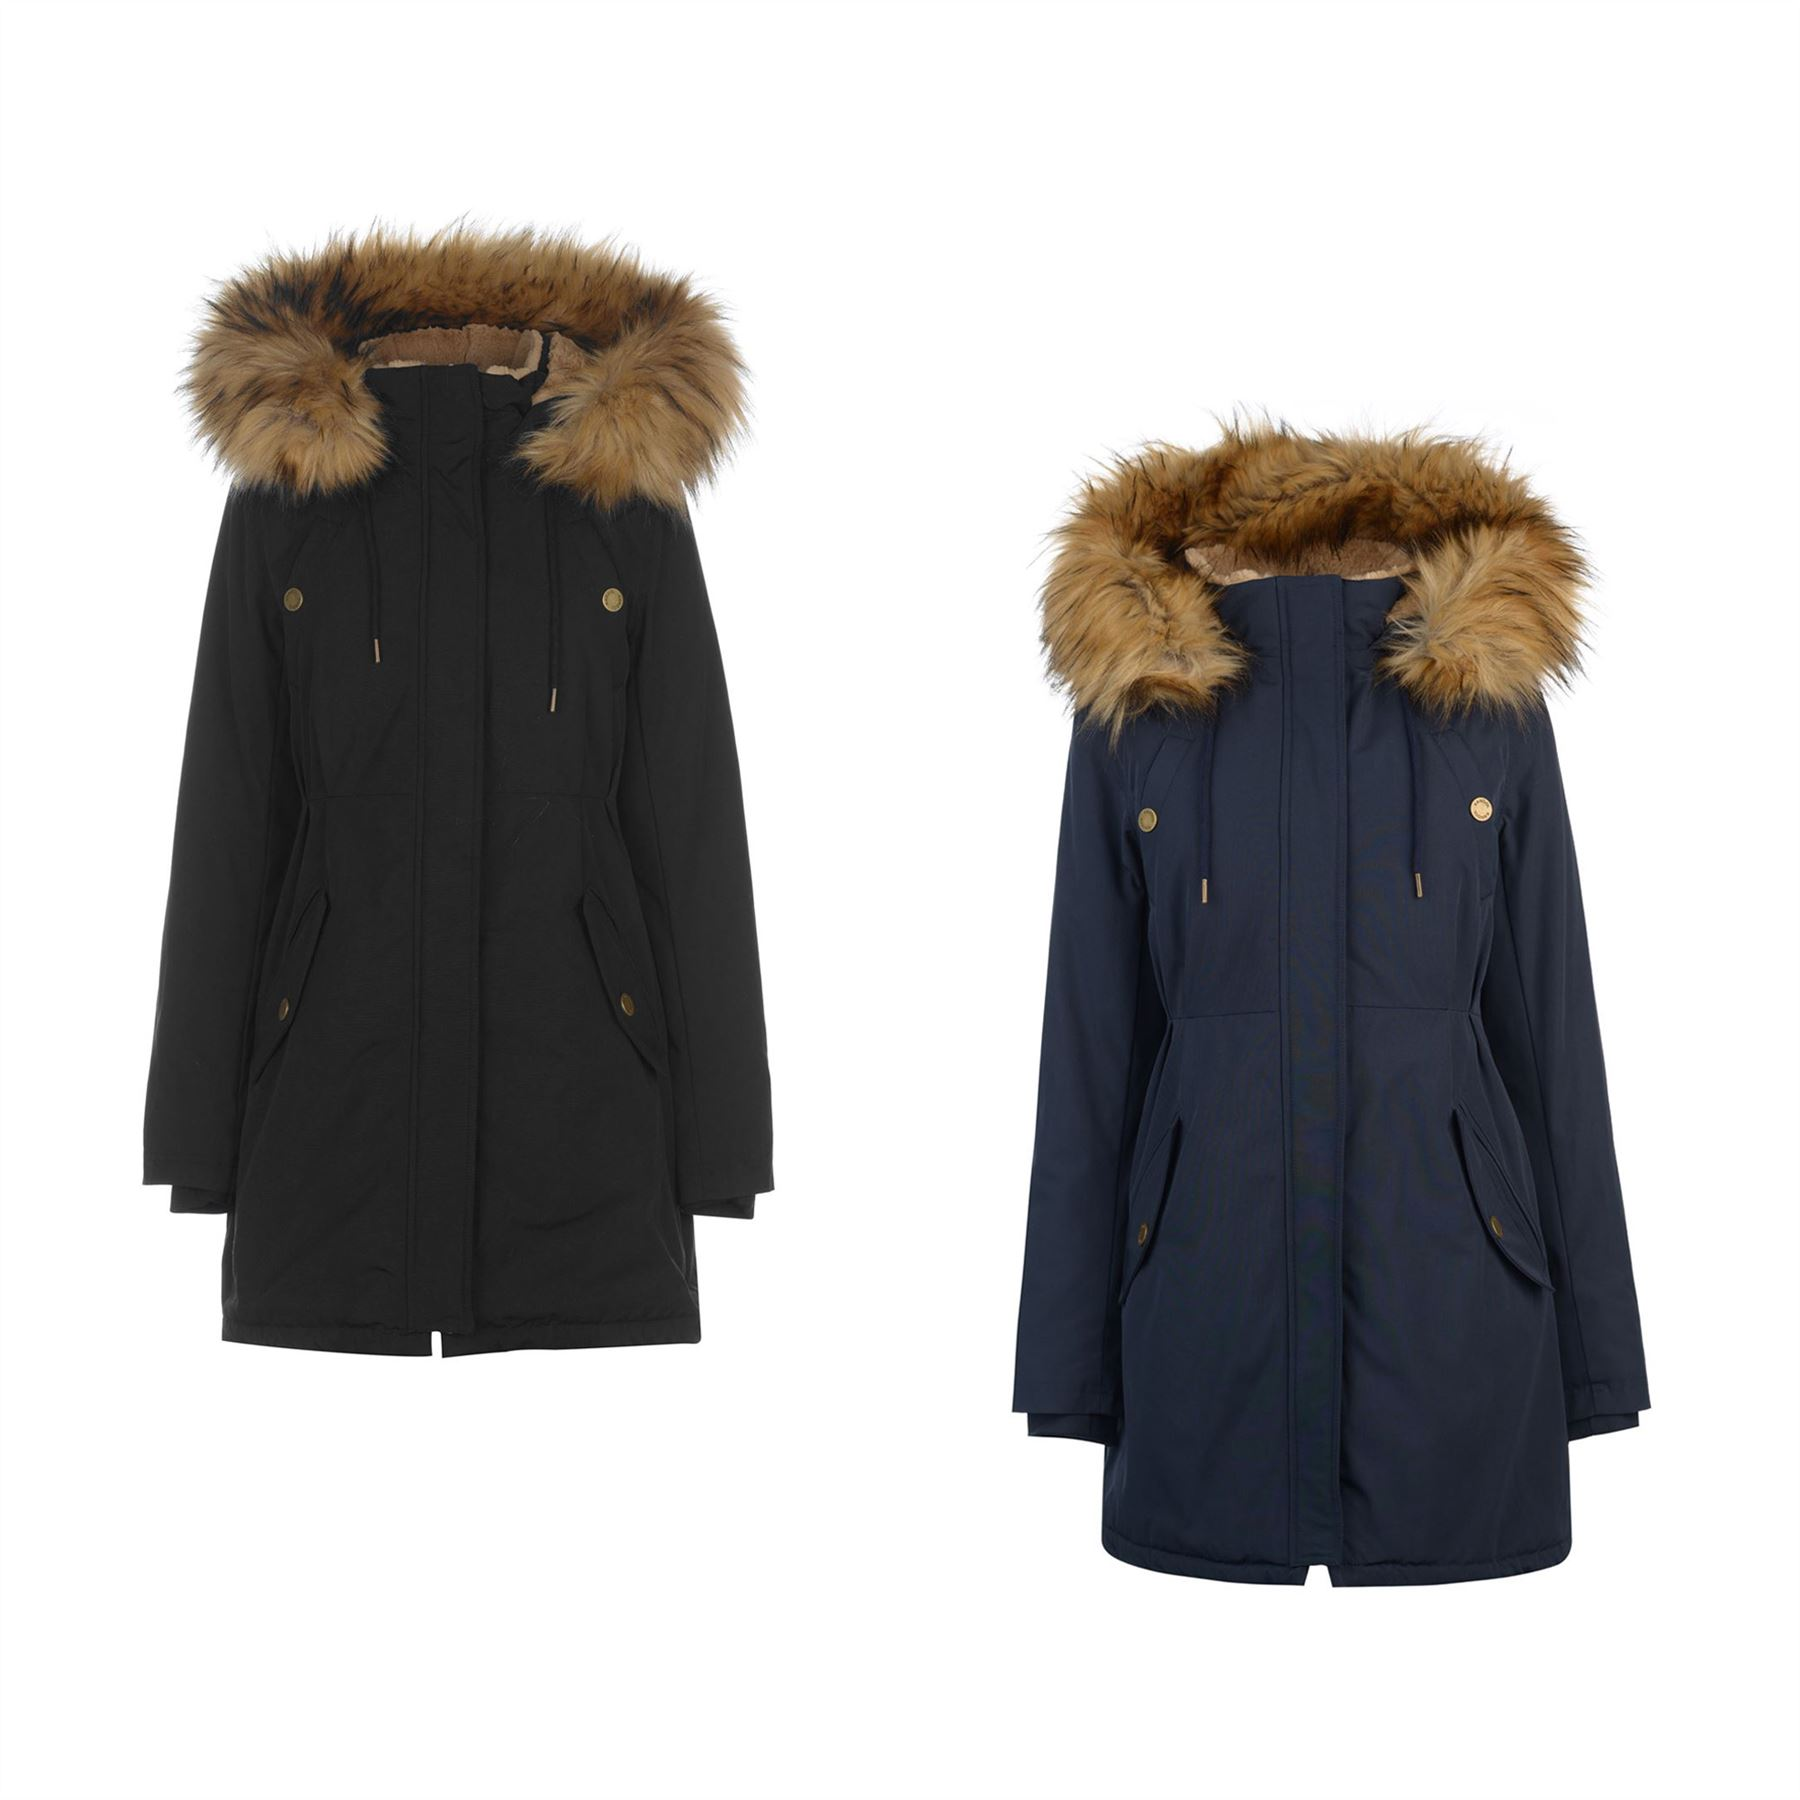 Details about Kangol Classic Parka Jacket Womens Coats Outerwear 0929ef1216